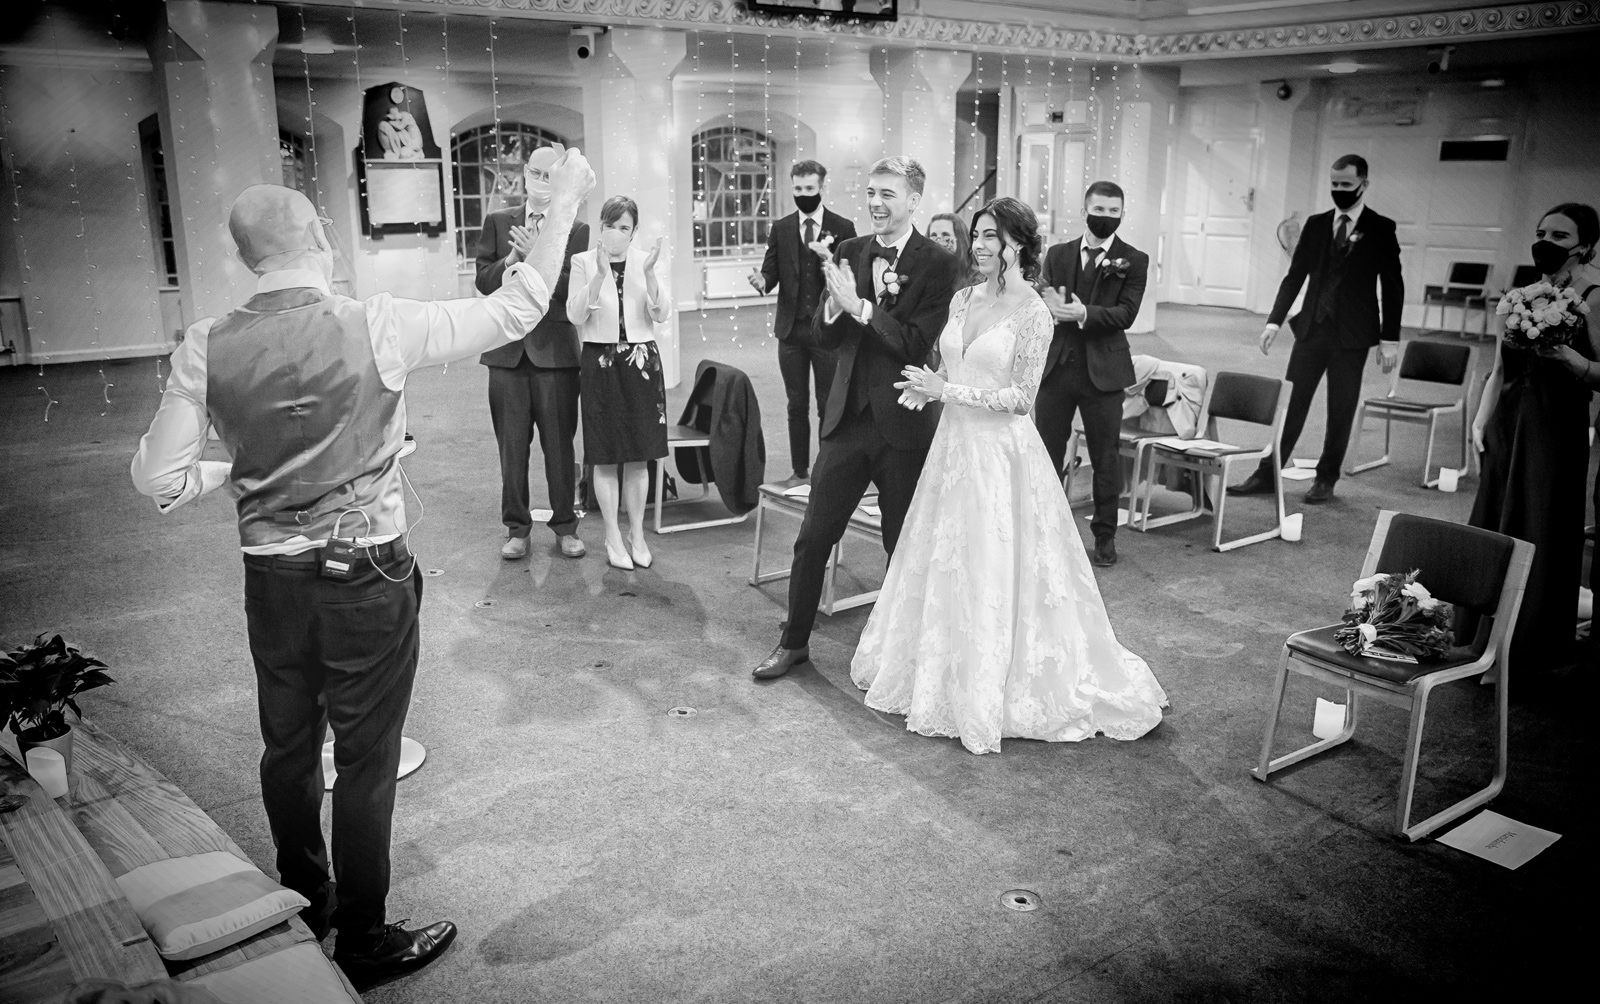 All Souls Church Wedding London - with plenty of social distancing joy! London Wedding Photographers